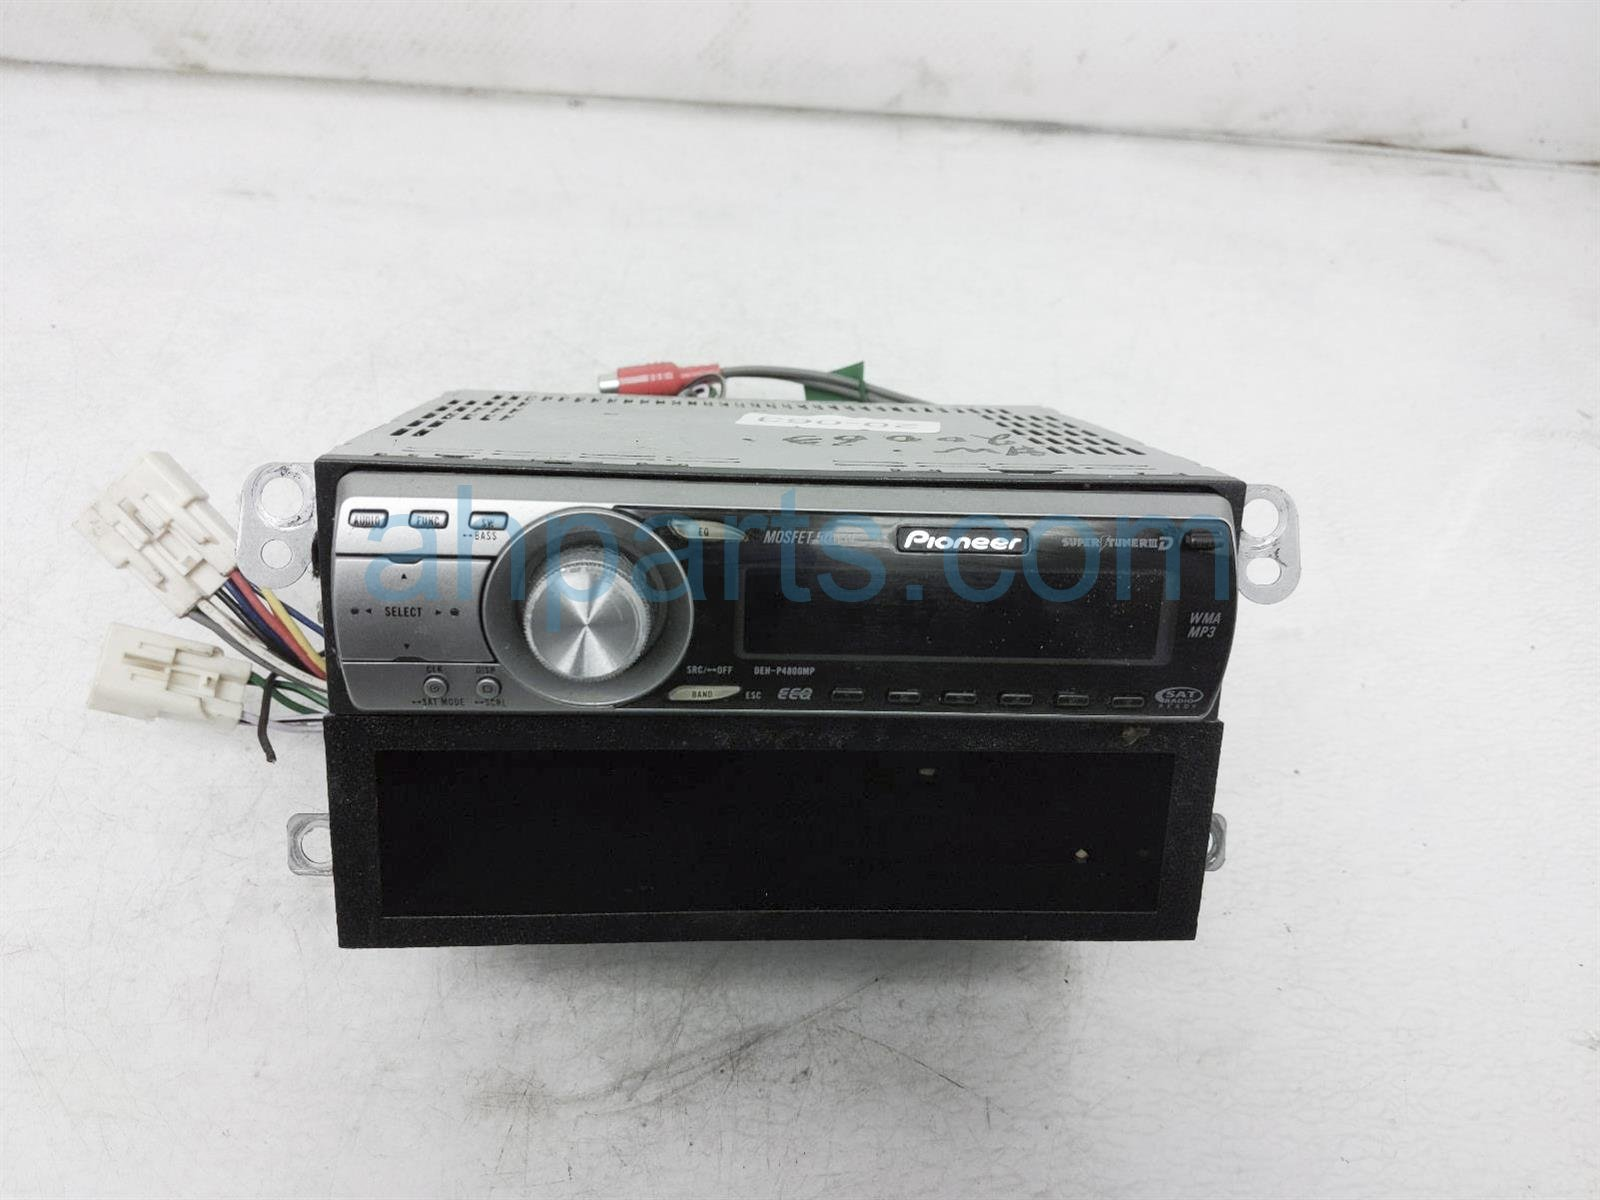 2001 Toyota Camry Pioneer Aftermarket Radio Assy Replacement